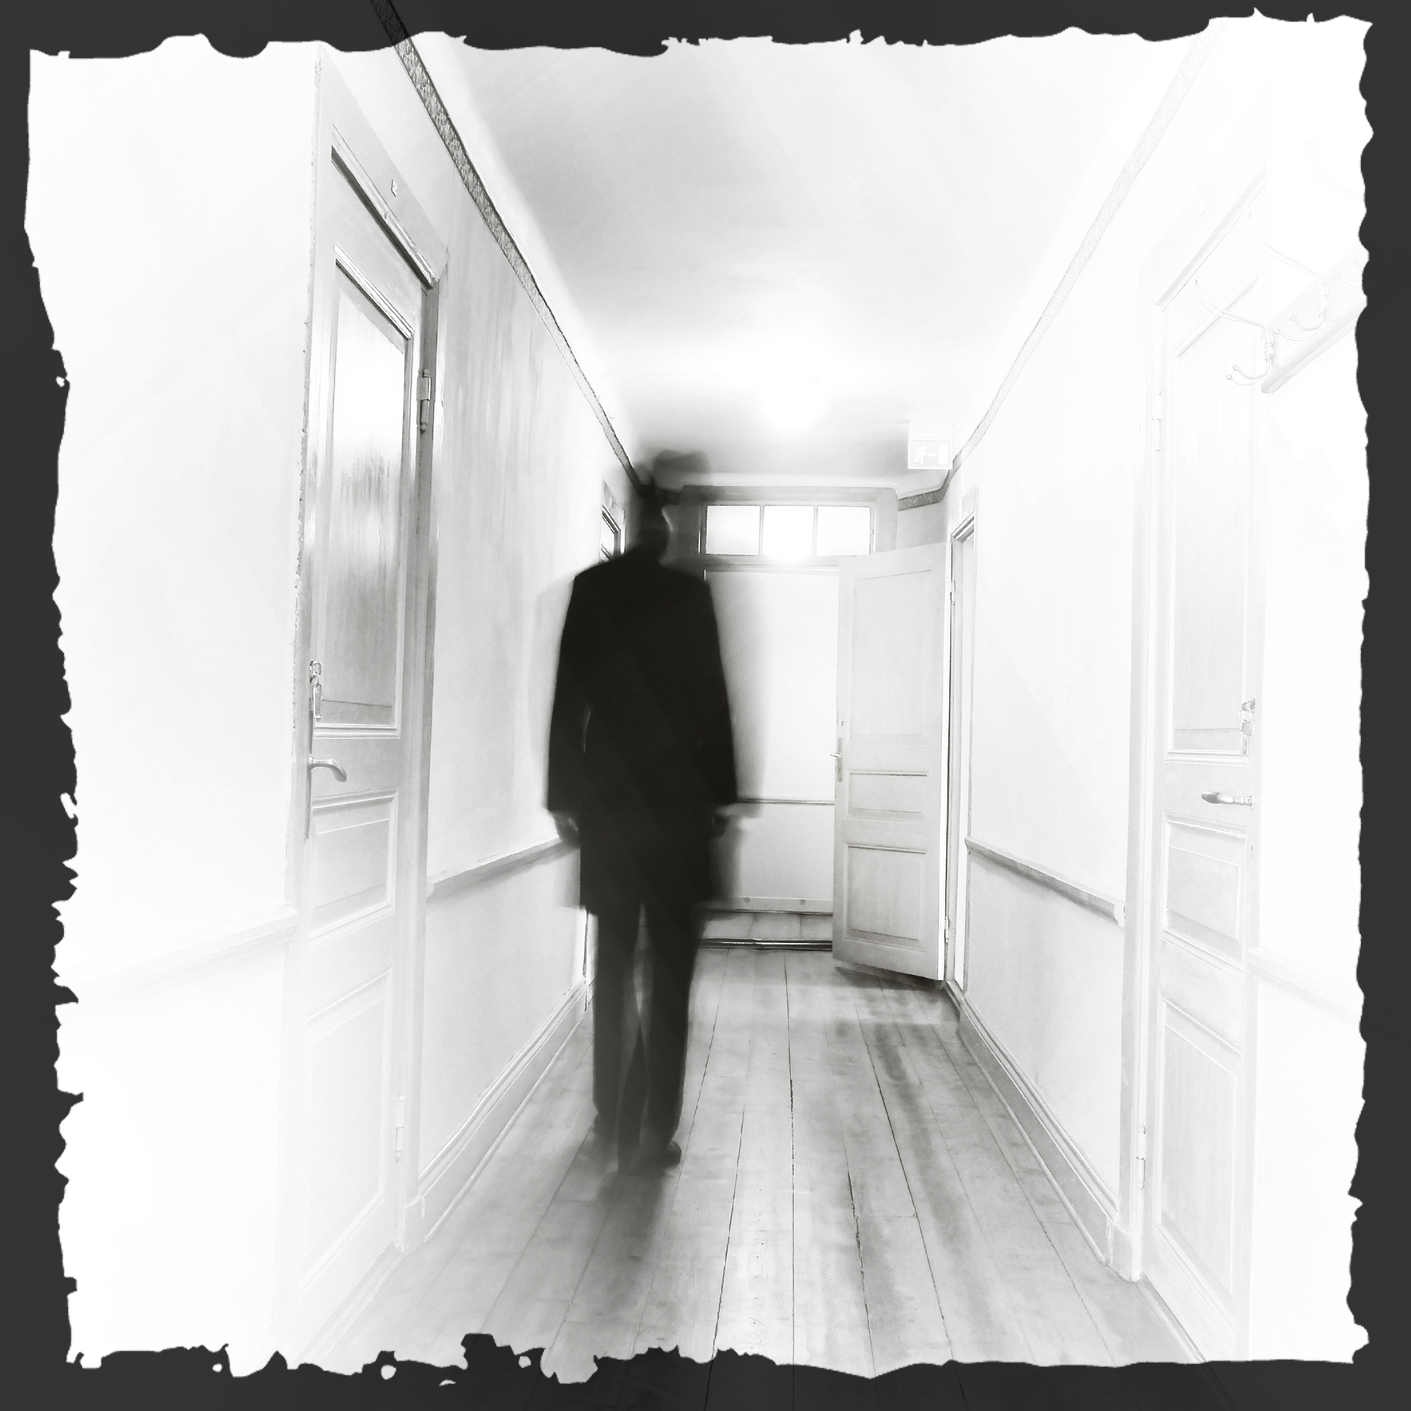 ghost in a hallway